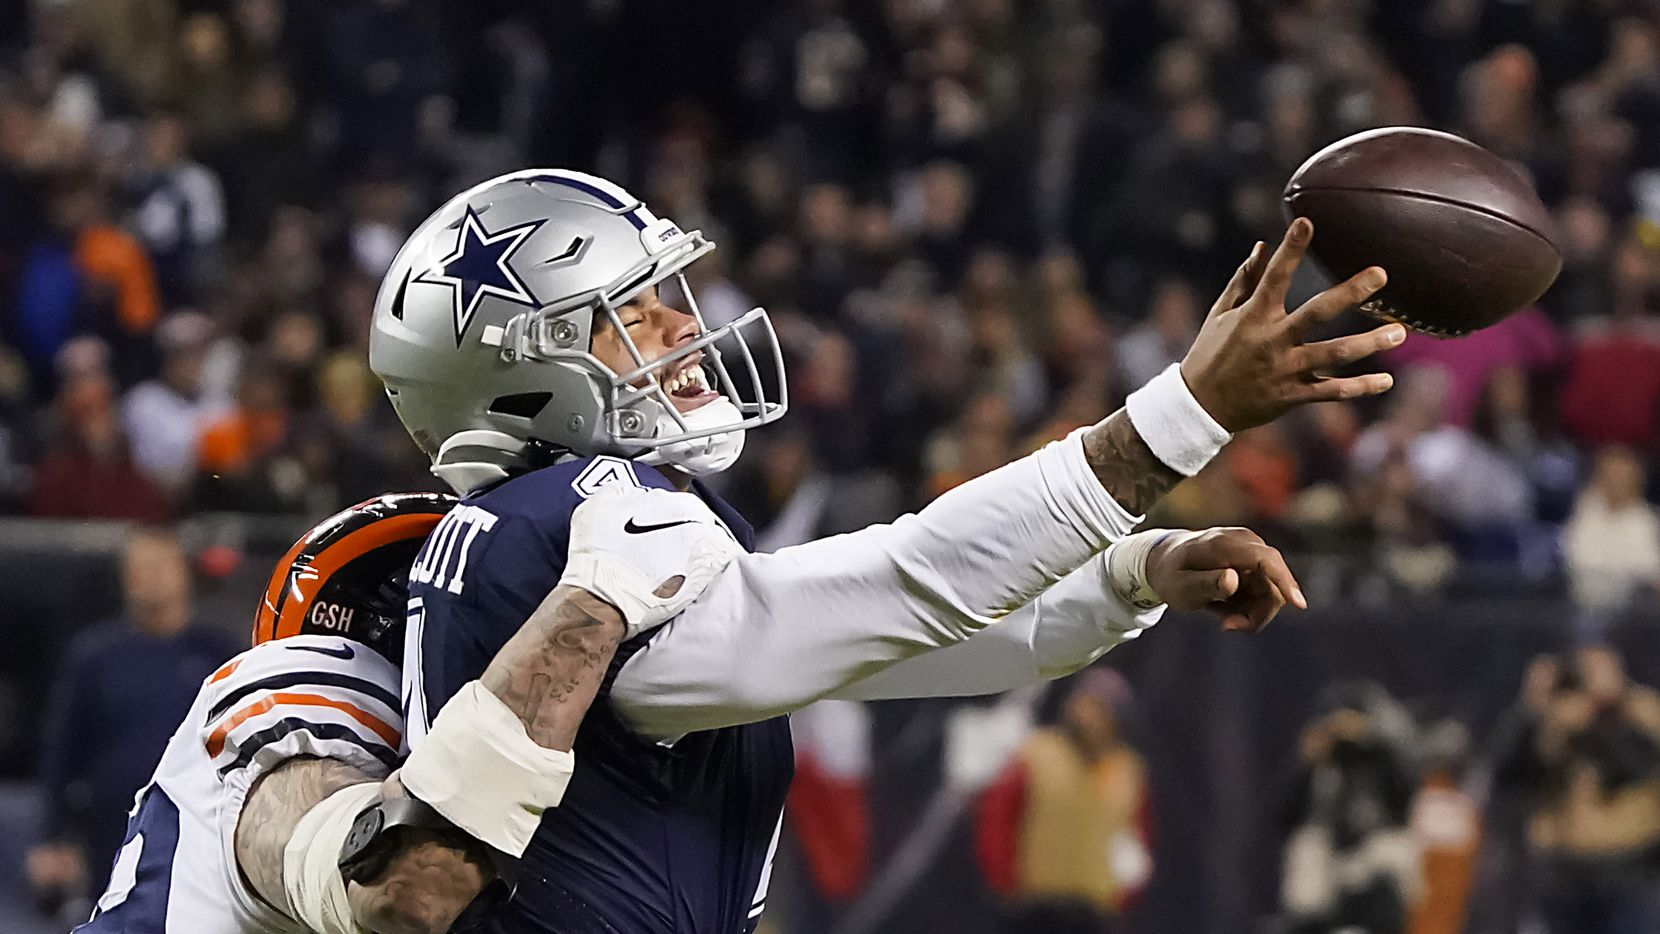 Dallas Cowboys quarterback Dak Prescott (4) tries to get off a pass as he is hit by Chicago Bears outside linebacker Aaron Lynch (99), resulting in a ruling of intentional grounding, during the second half of an NFL football game at Soldier Field on Thursday, Dec. 5, 2019, in Chicago. (Smiley N. Pool/The Dallas Morning News)